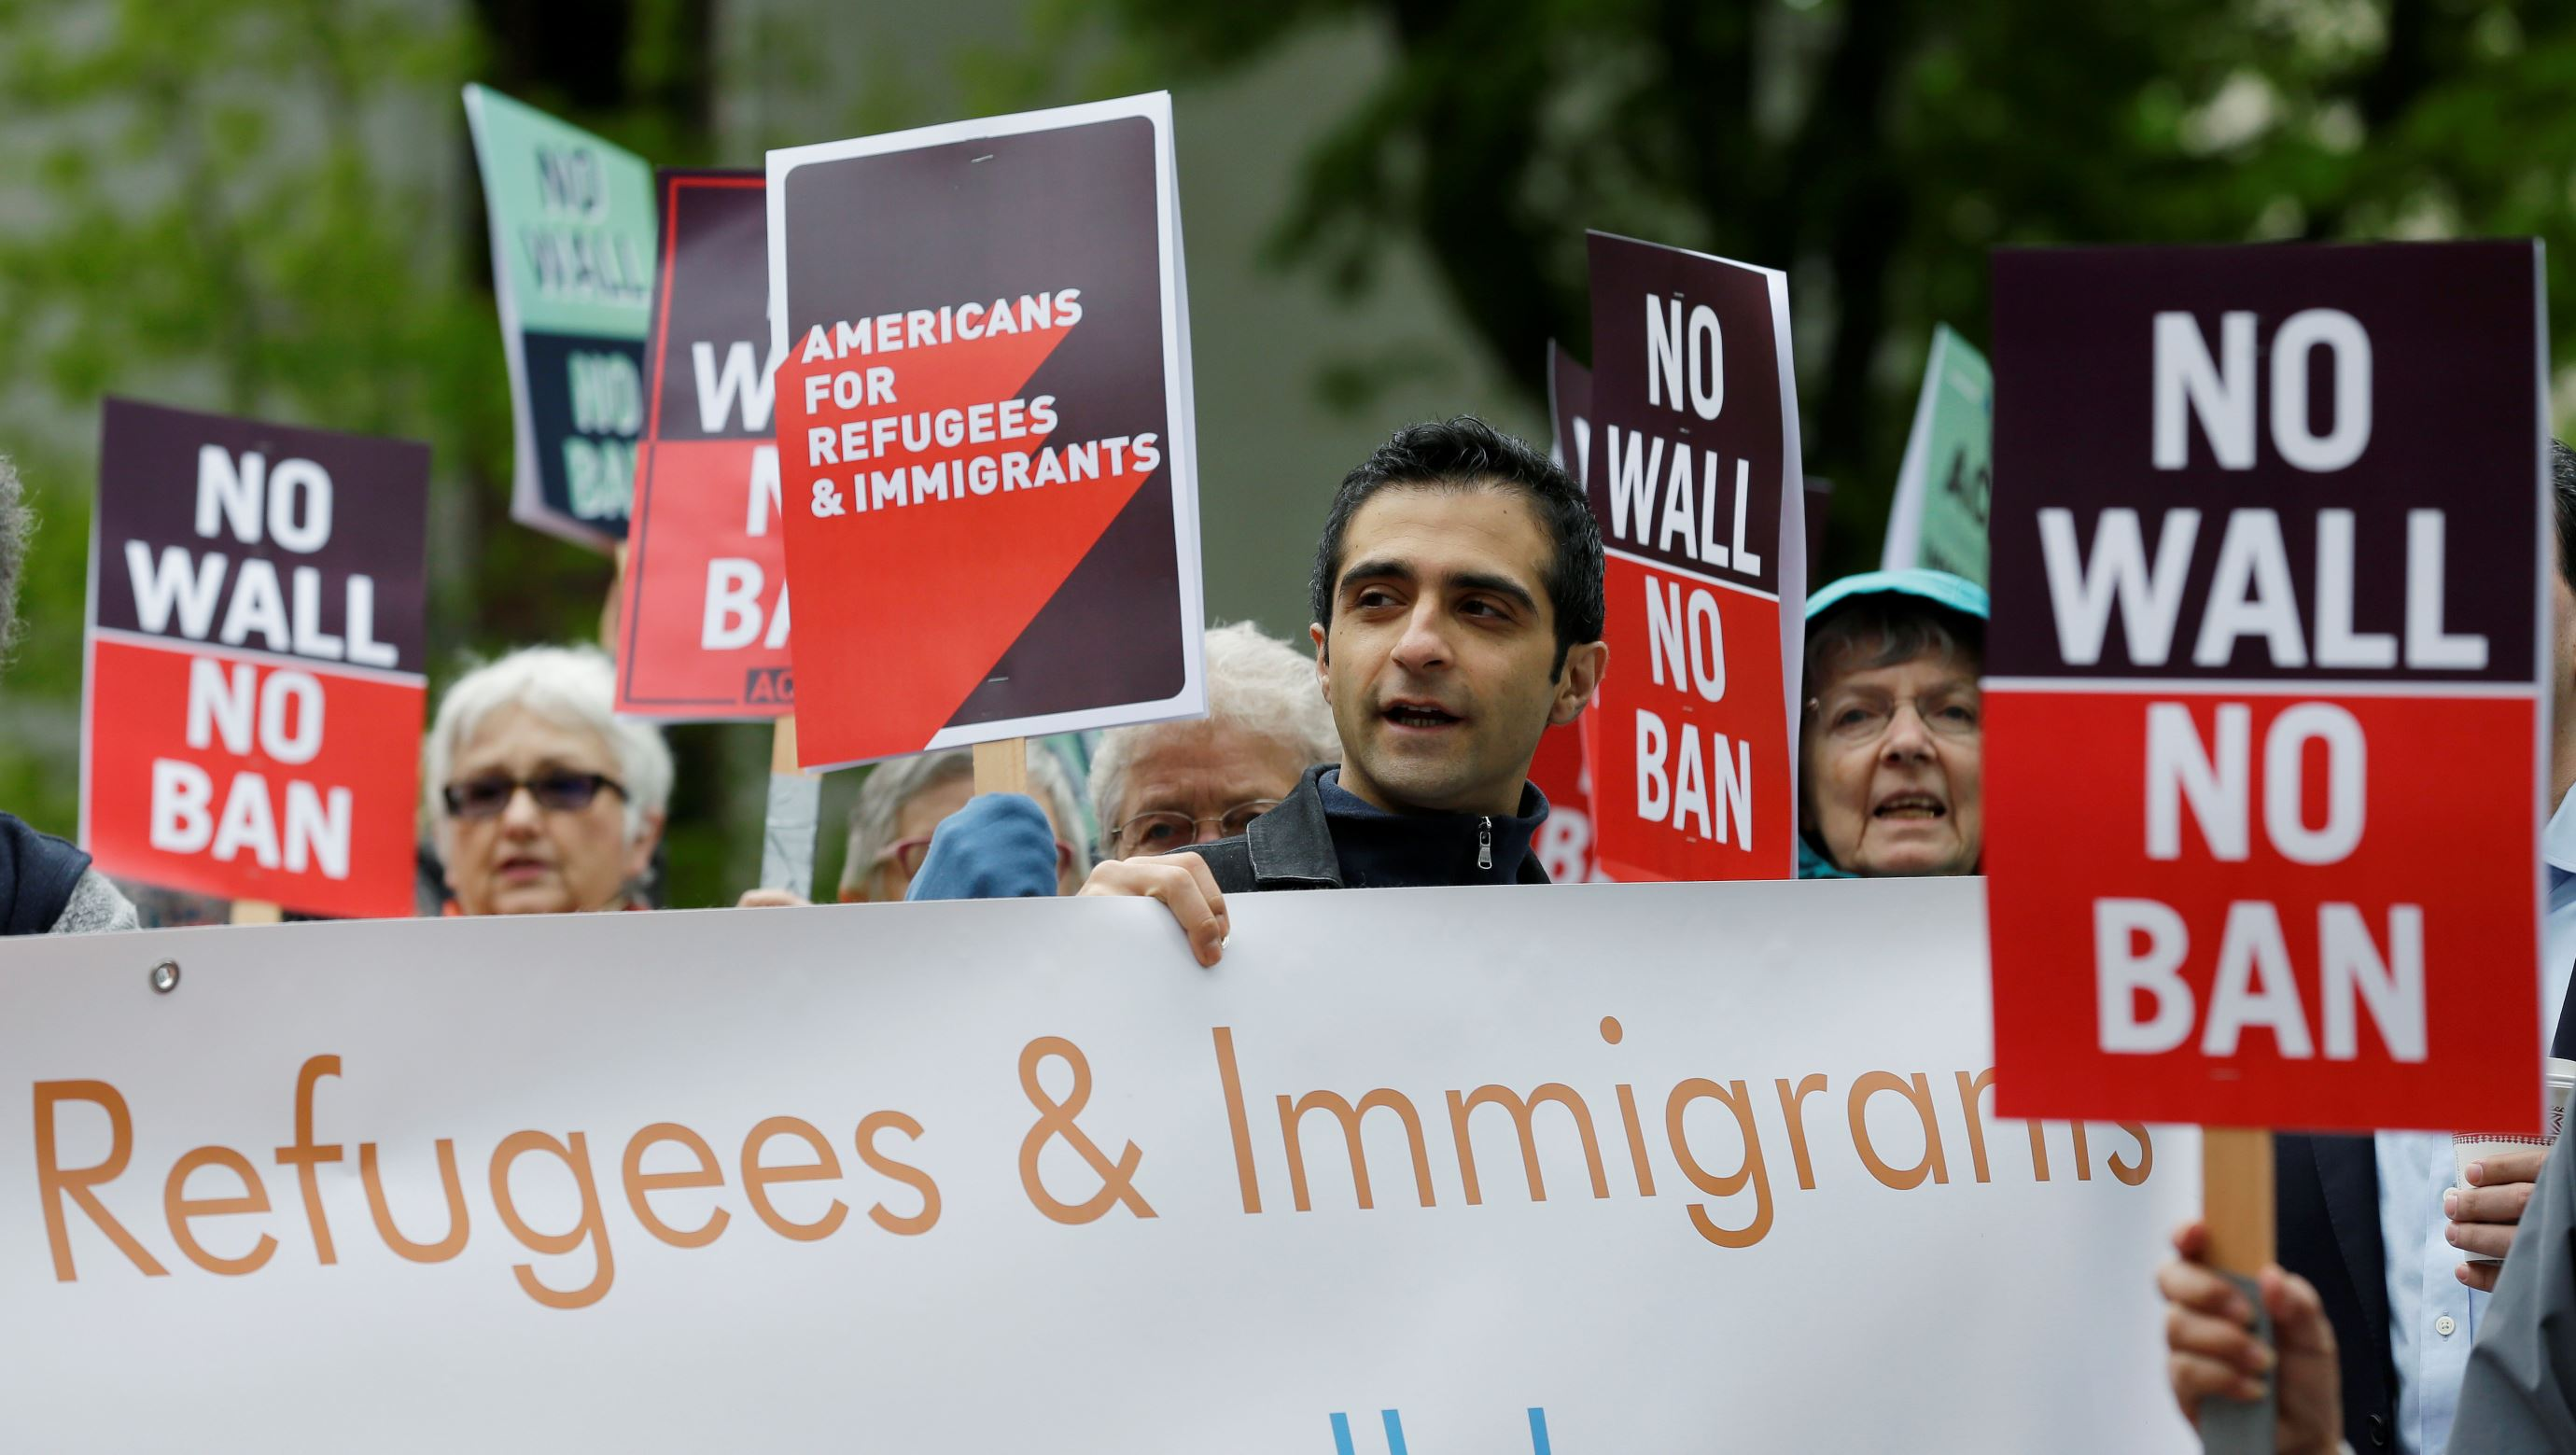 U.S. court lets Trump travel ban go partially into effect